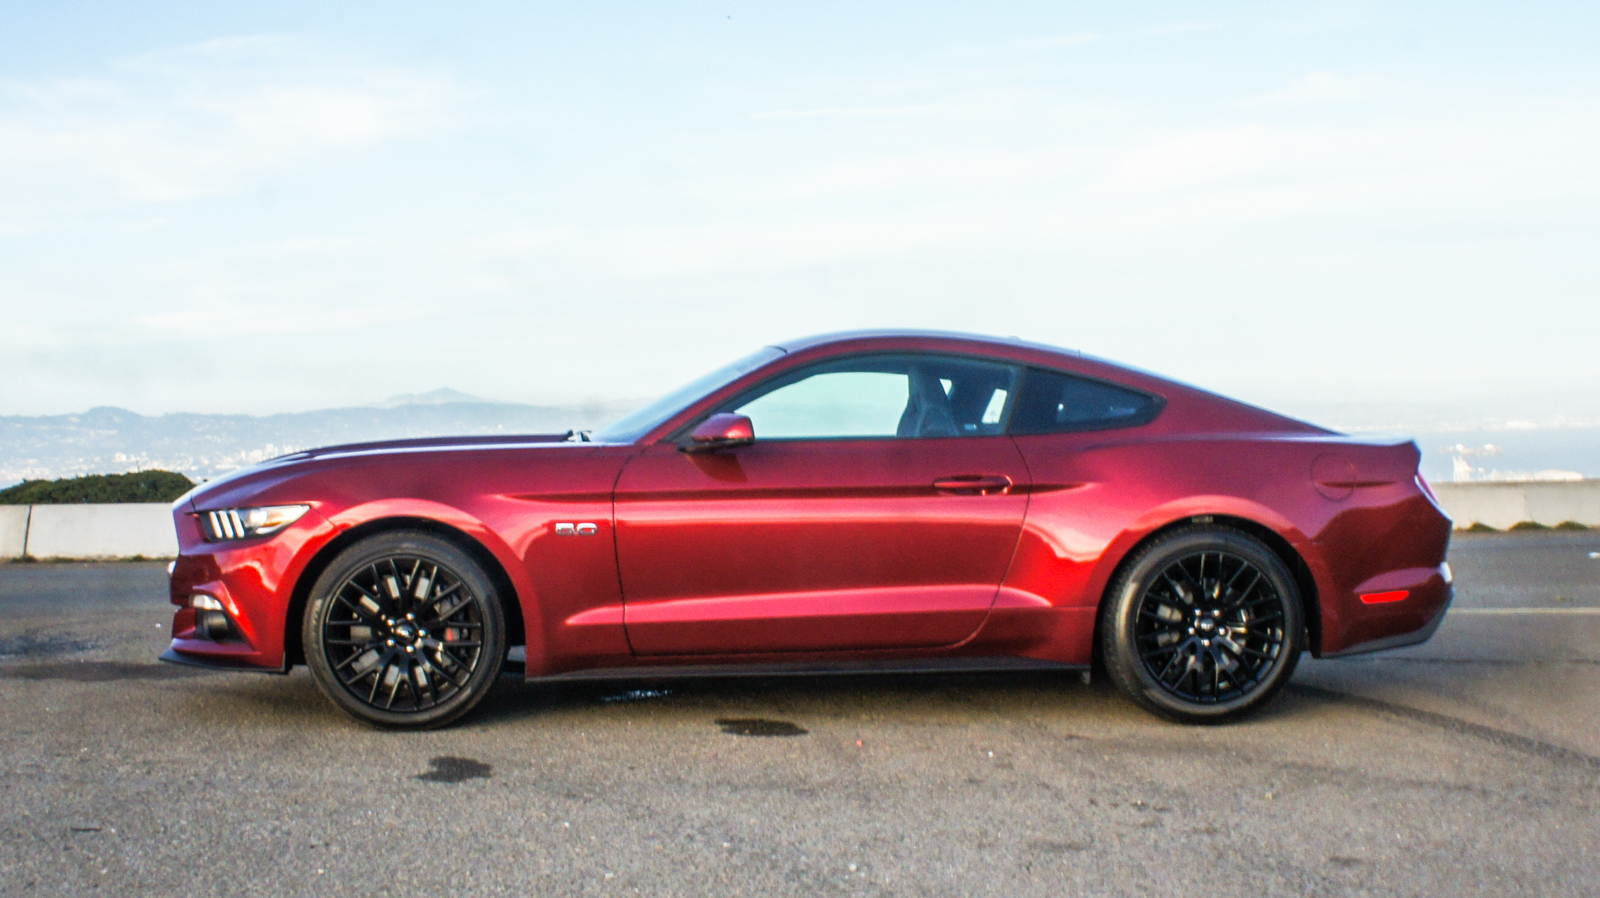 2015 Ford Fusion Rims >> 2015 Ford Mustang review - Roadshow